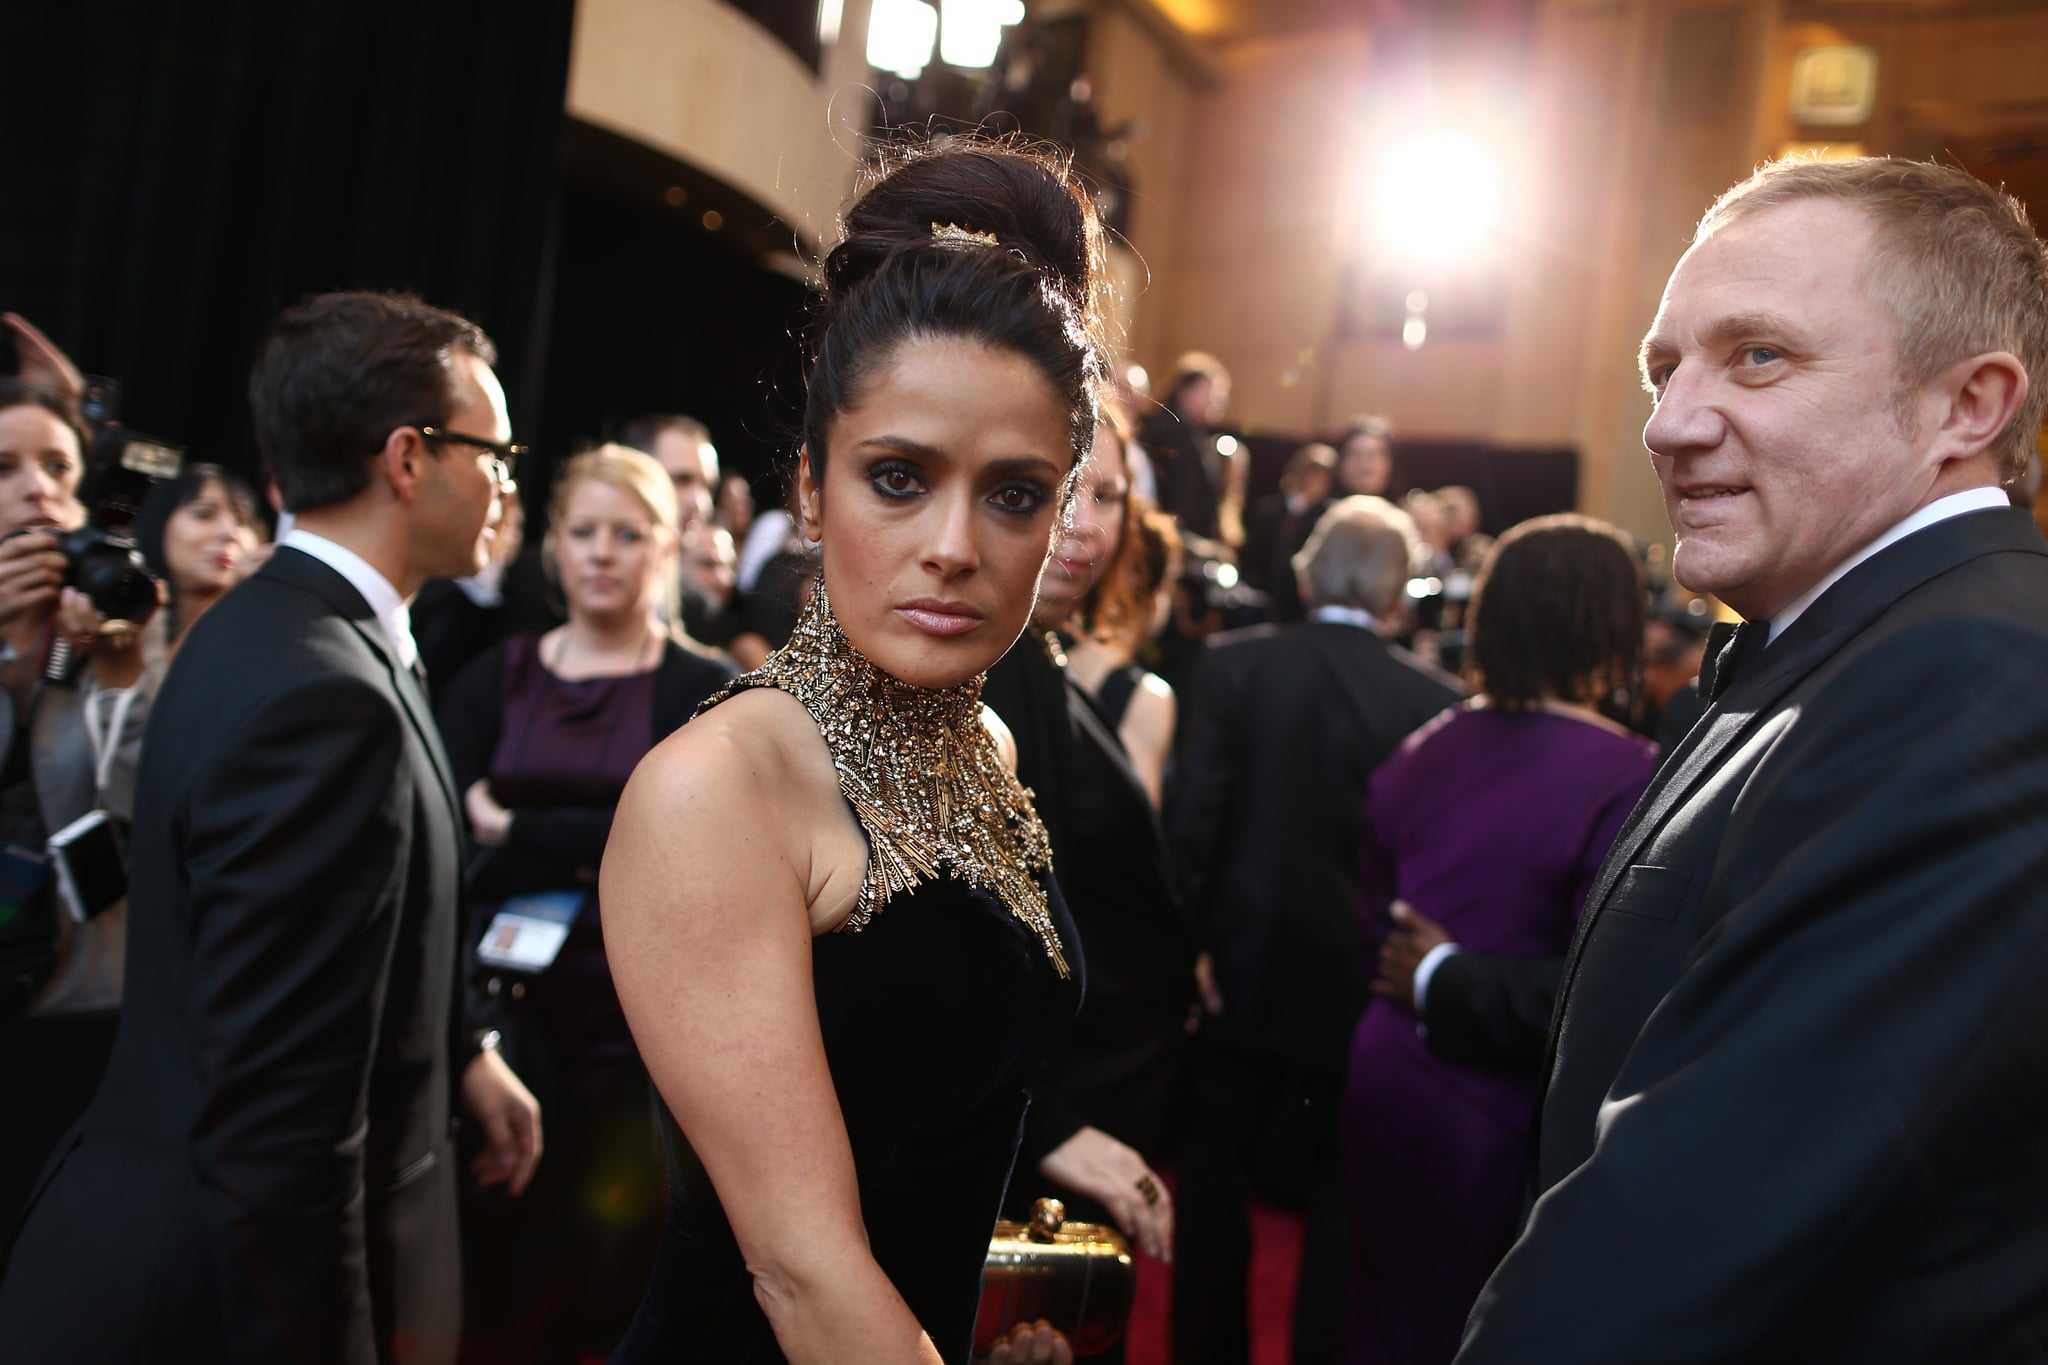 Salma Hayek was surprised to find a photographer behind her.